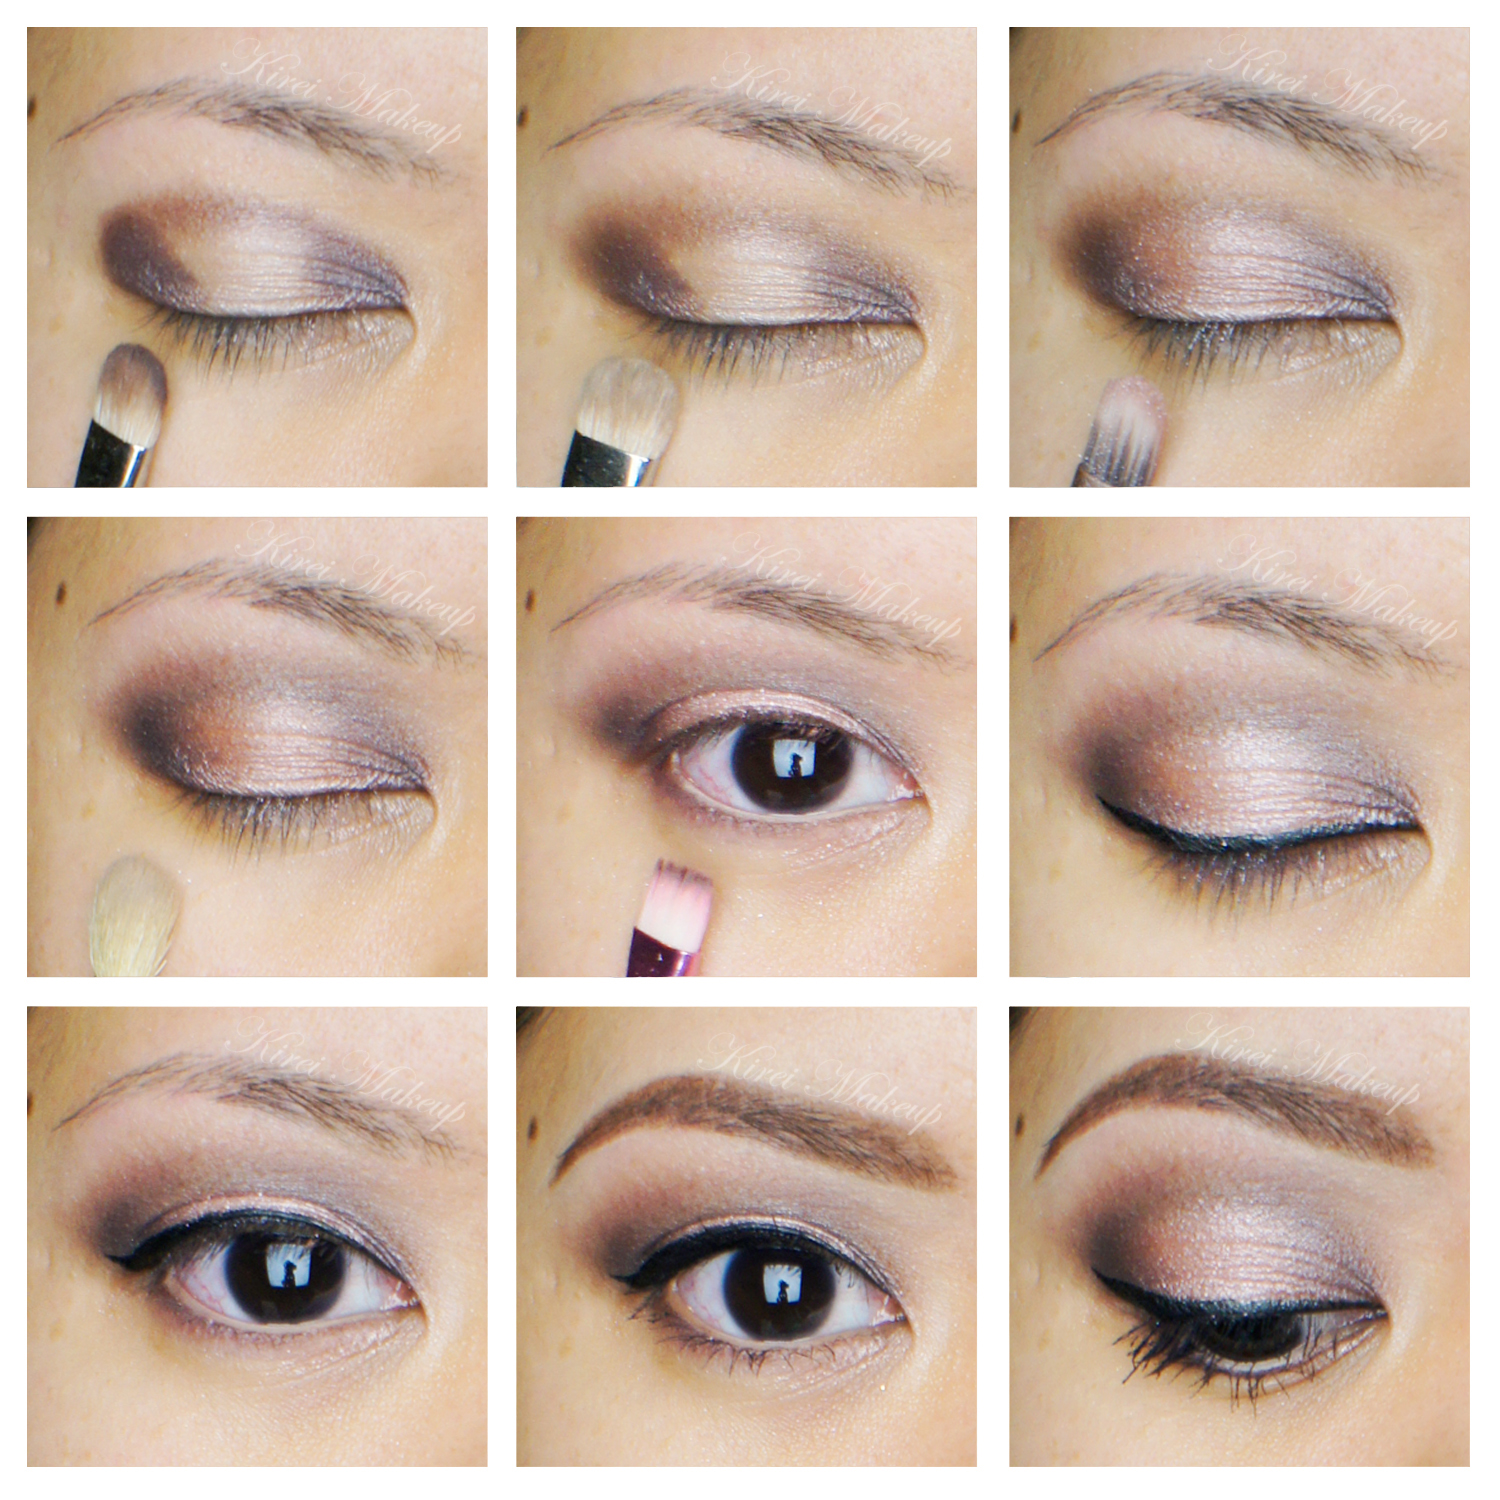 3 Ways To Look Better Naked Youtube: Urban Decay Naked 3 Look #2